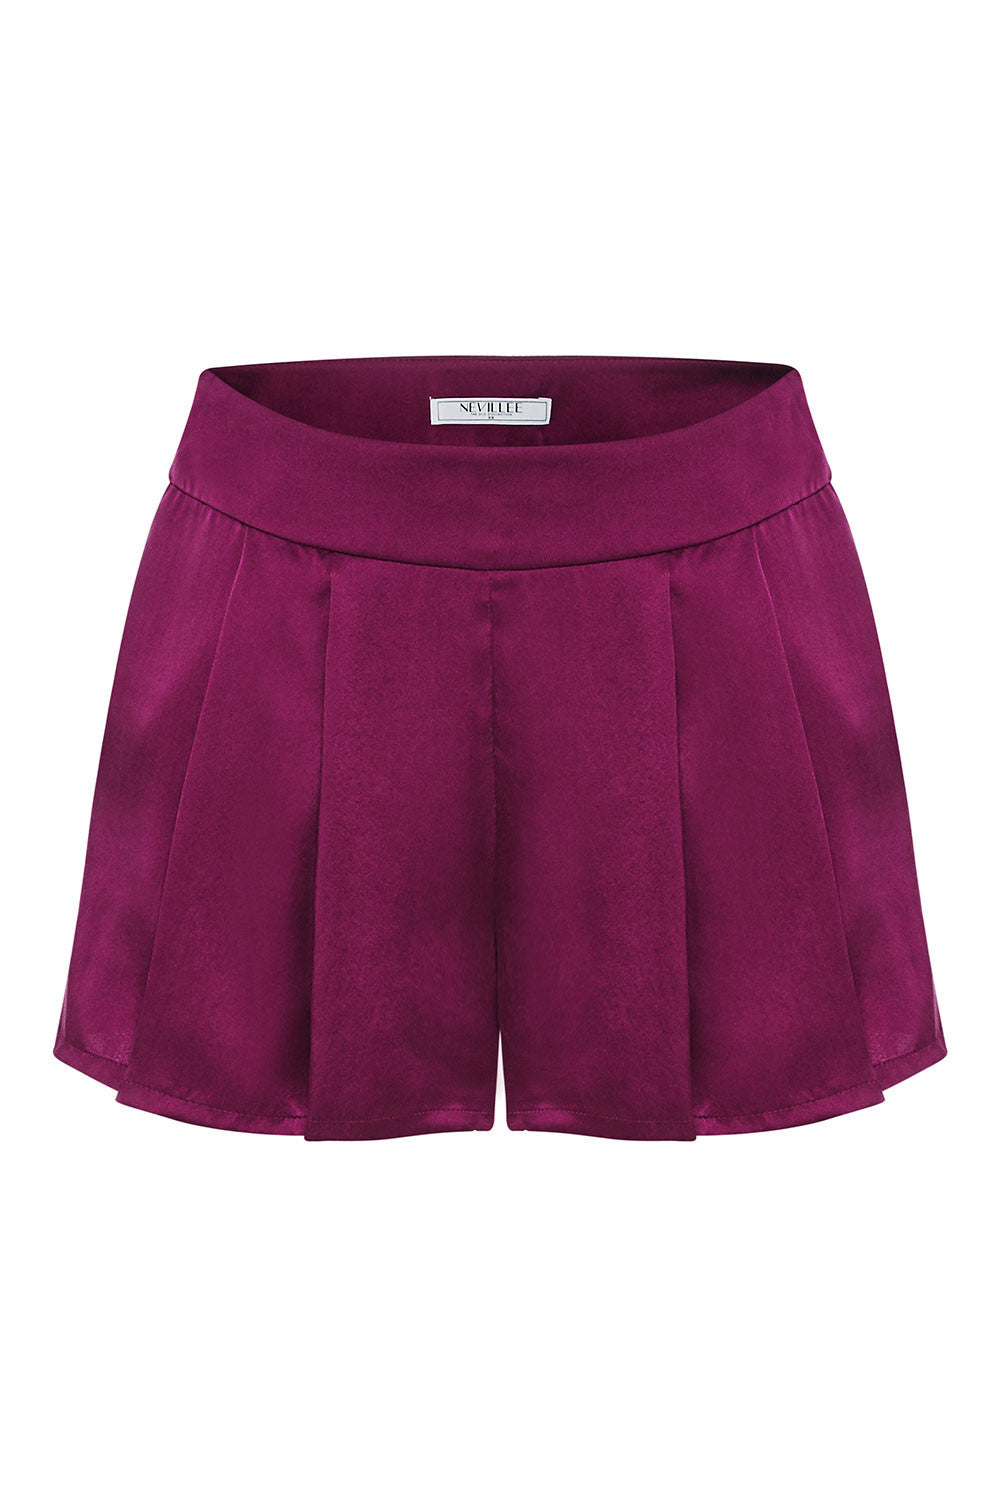 SILK SHORTS - RED WINE